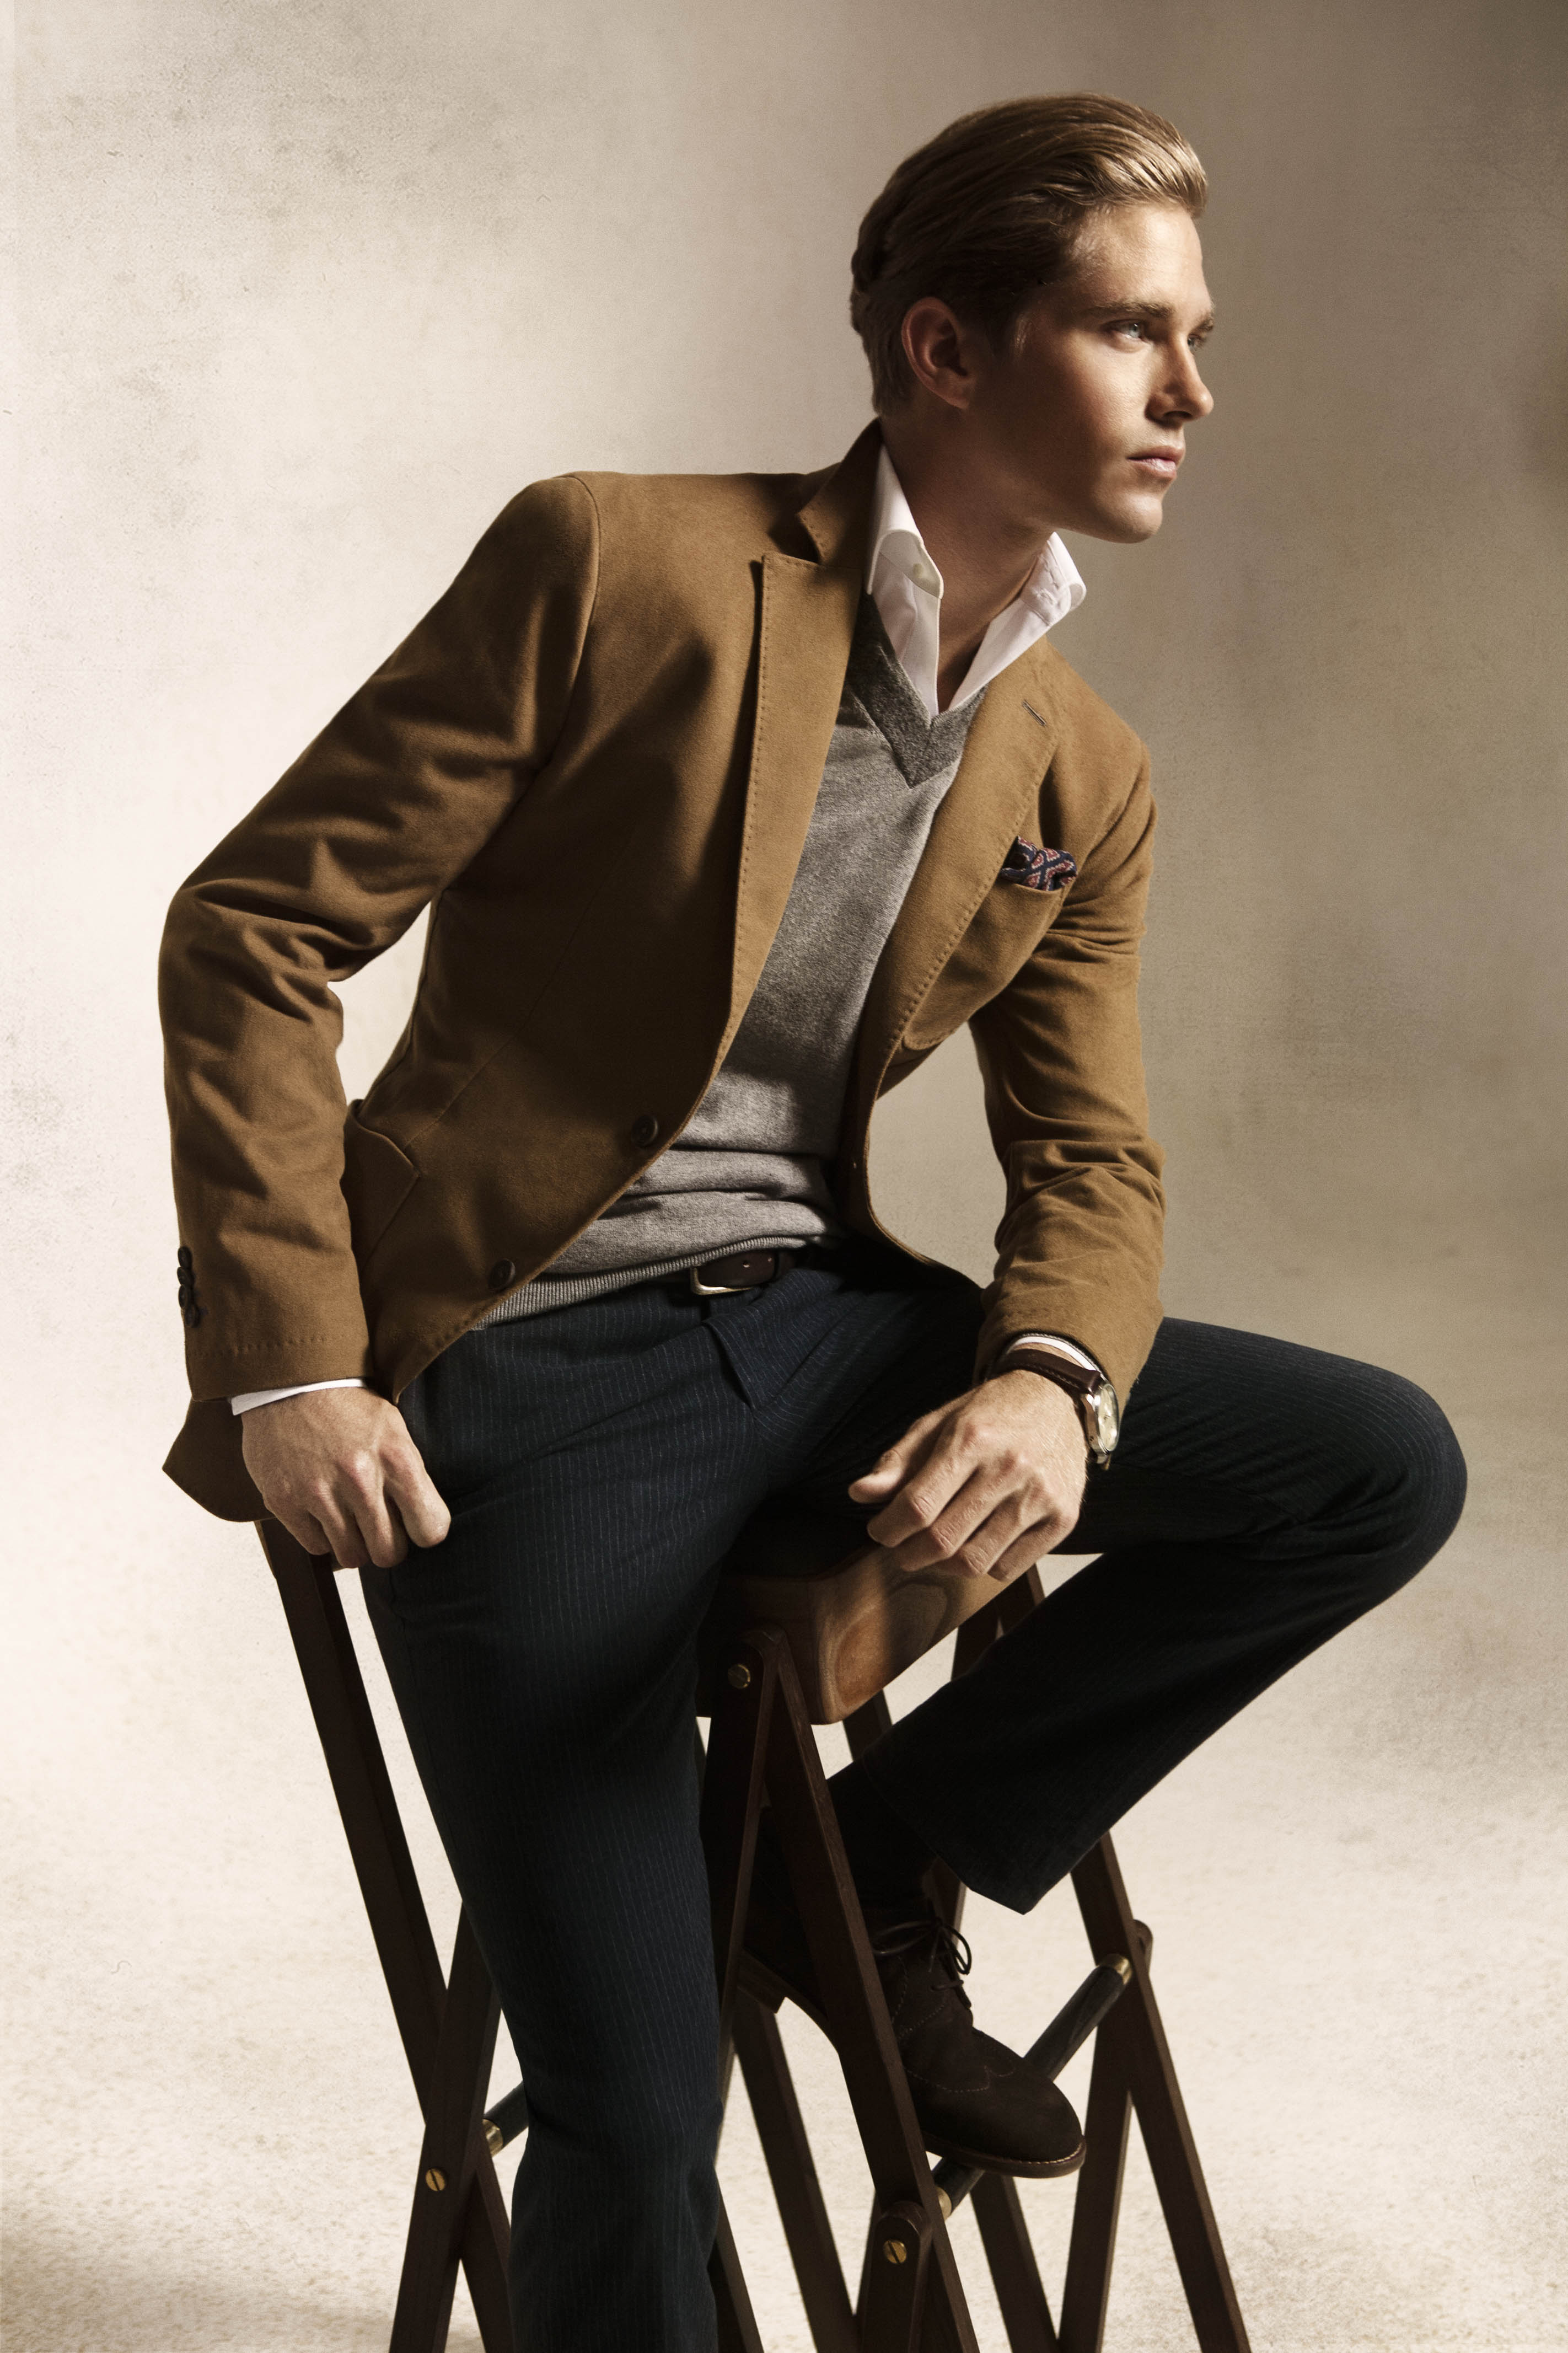 Massimo Dutti's September 2012 Lookbook Features a Sharply Dressed Travis Davenport